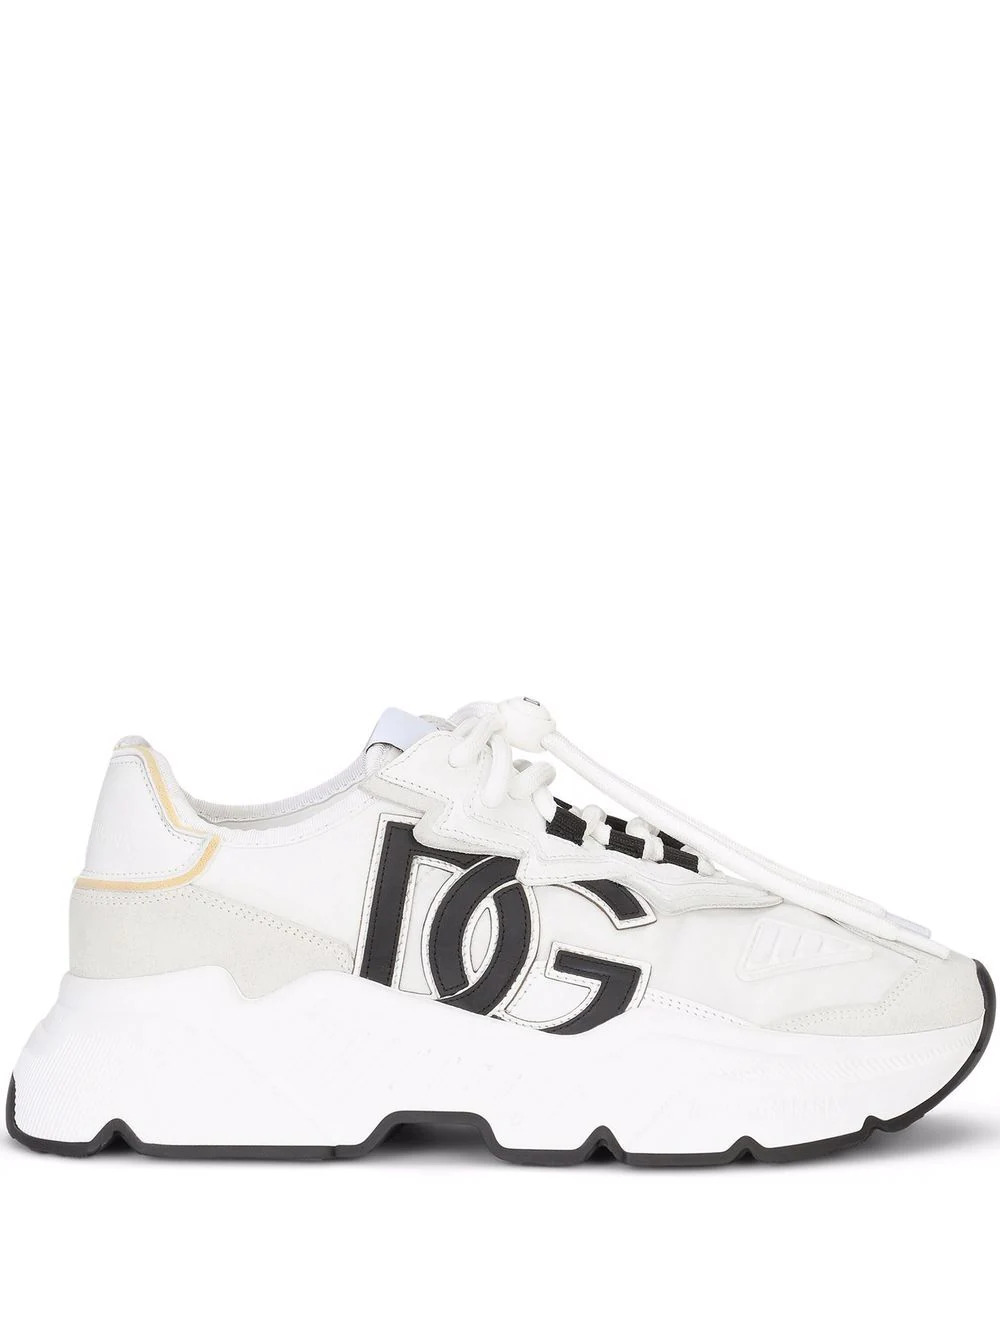 Sneakers Daymaster aus Materialmix